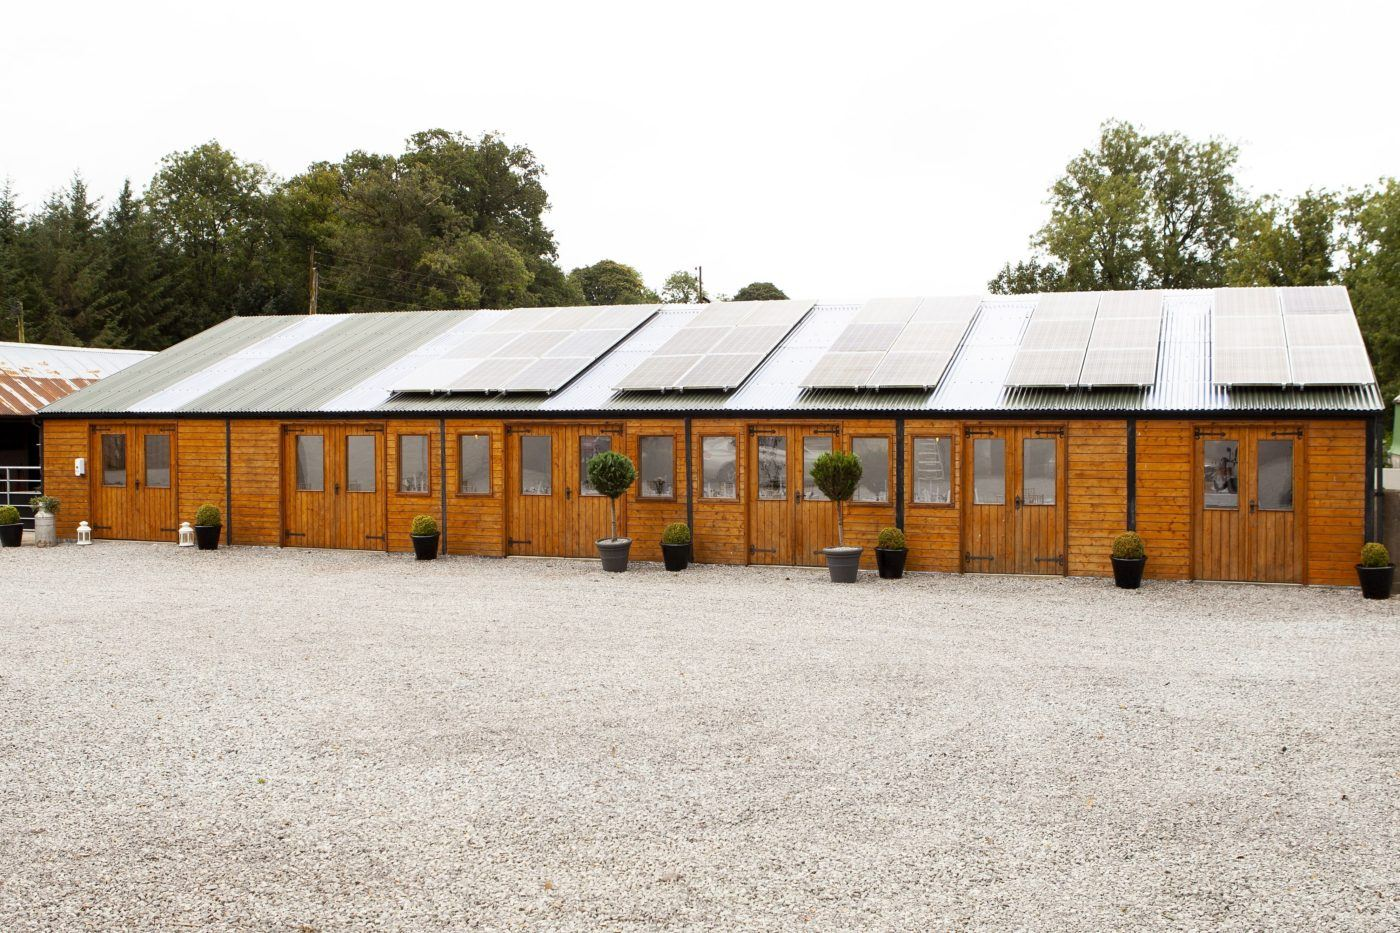 Long Barn Wedding Reception Venue at Blessingbourne Estate for Wedding Party's or events